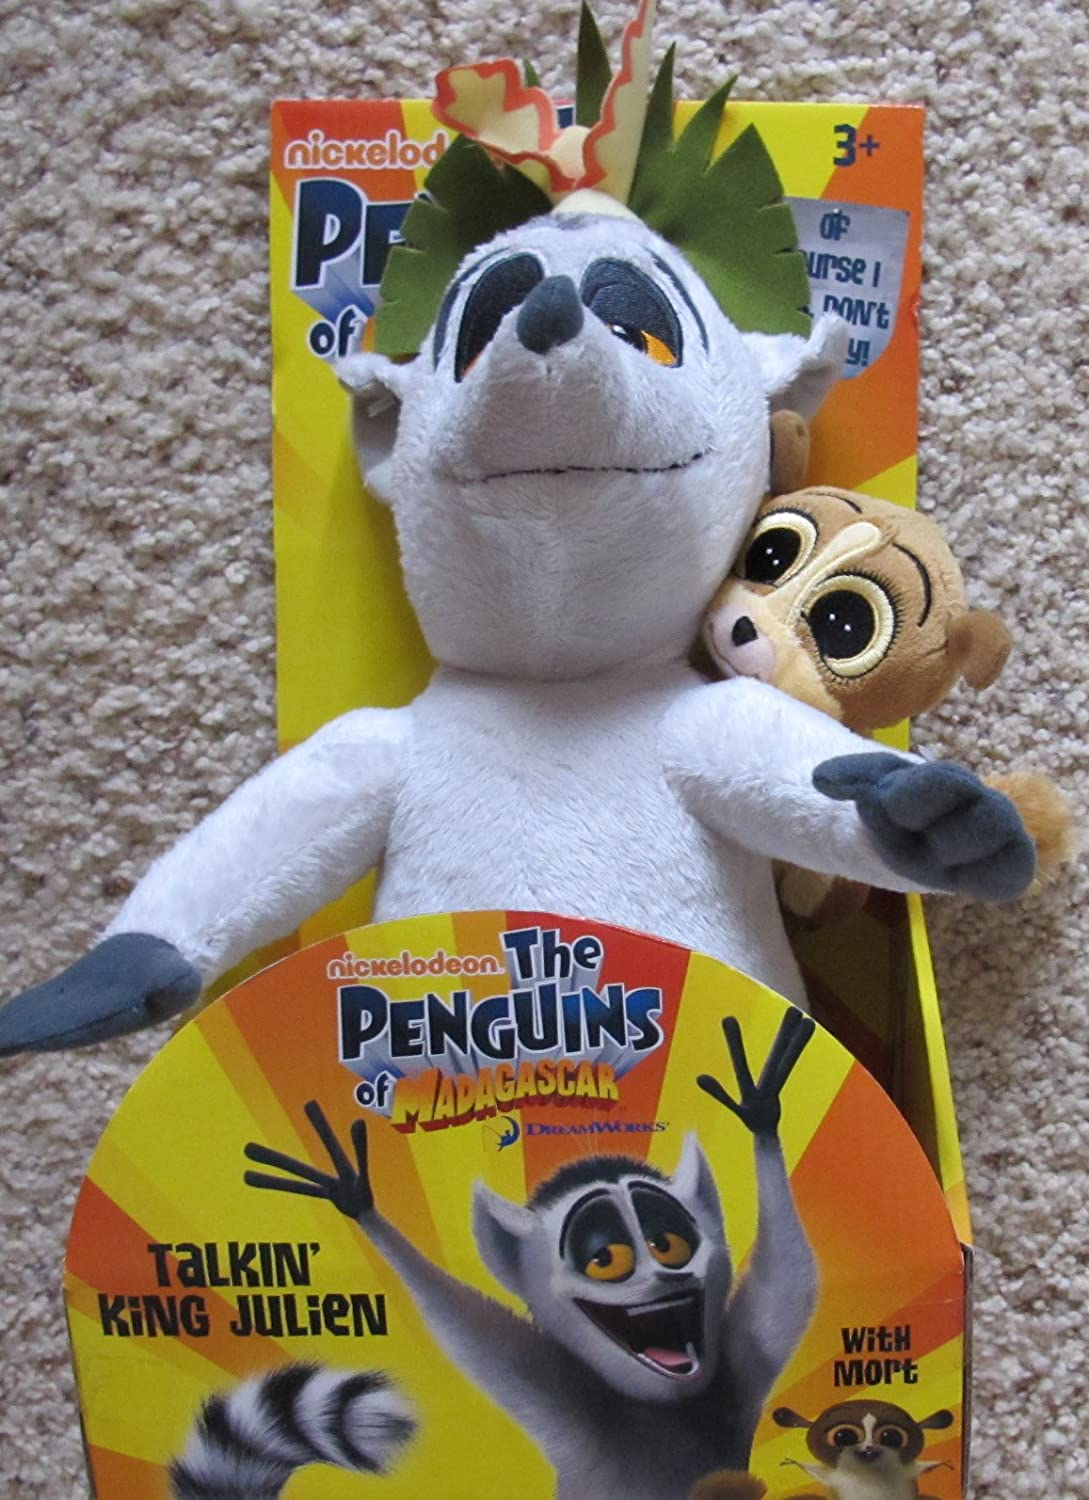 B00AFZVKBS The Penguins of Madagascar Plush Talkin' King Julien w Plush Mort & Talking King Julien Figures (2009) 81cyCyjeUfL.SL1500_